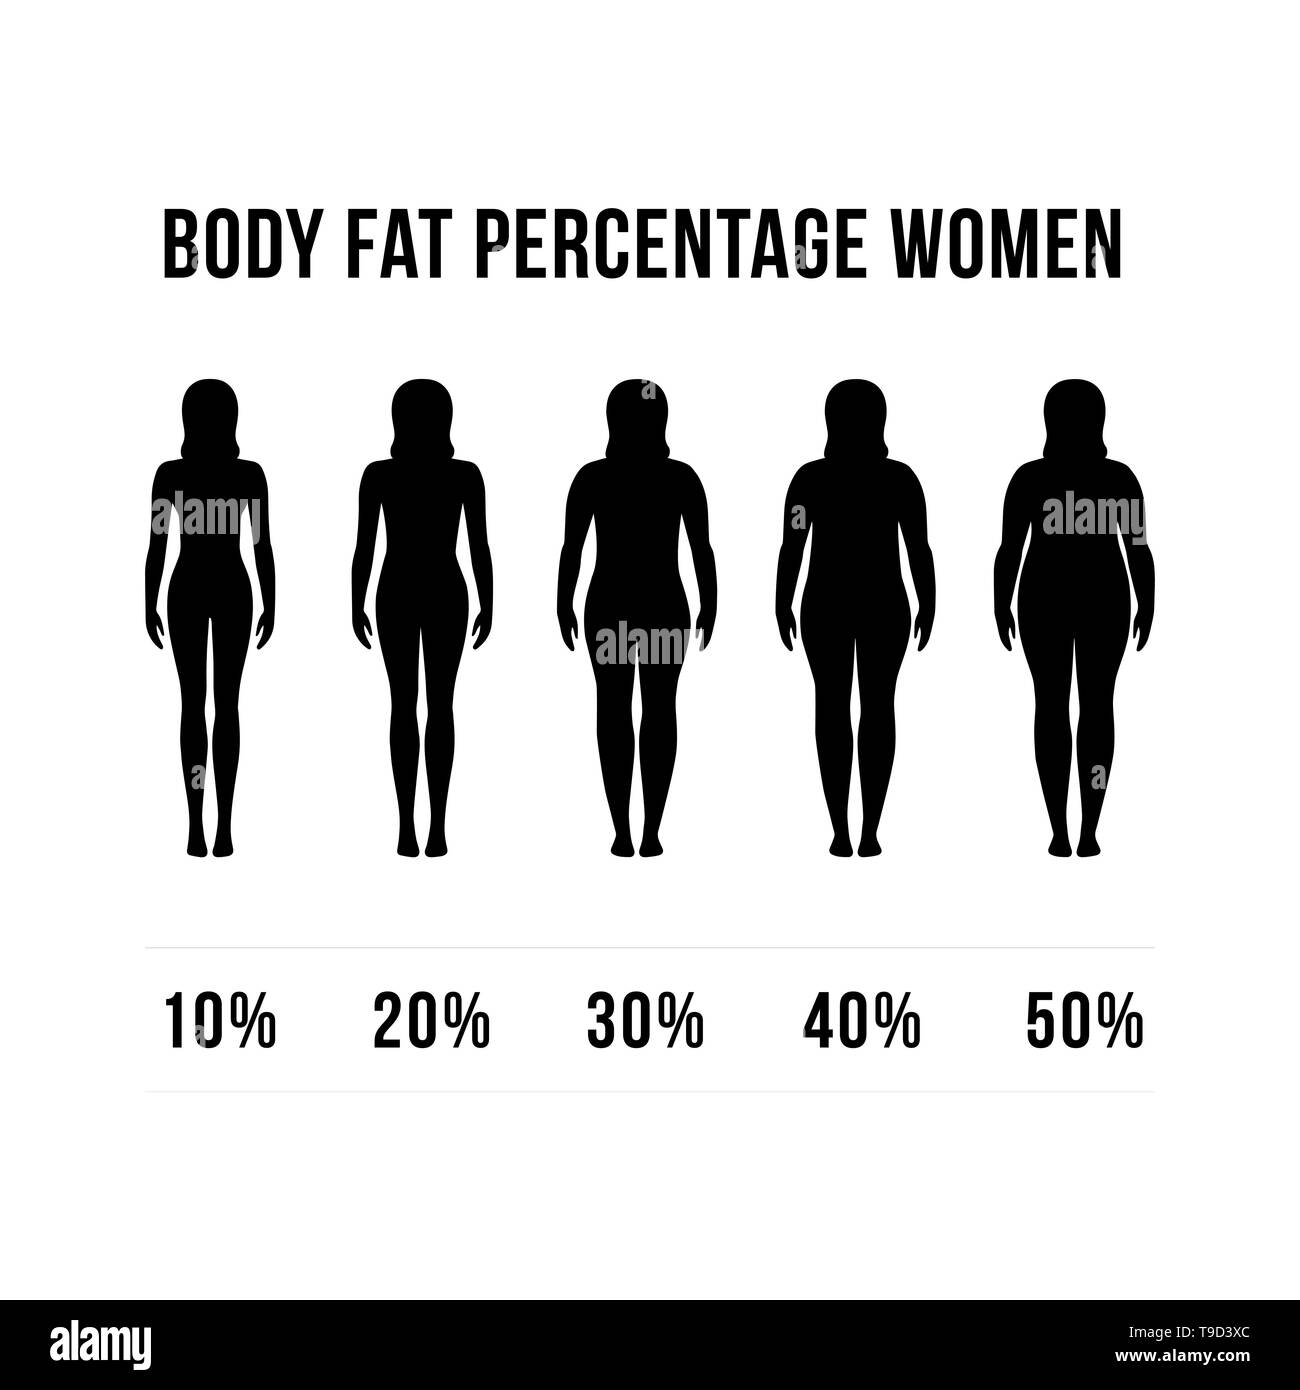 body fat percentage men women designs concept vector. diets and exercises before and after from fat to fitness. - Stock Image